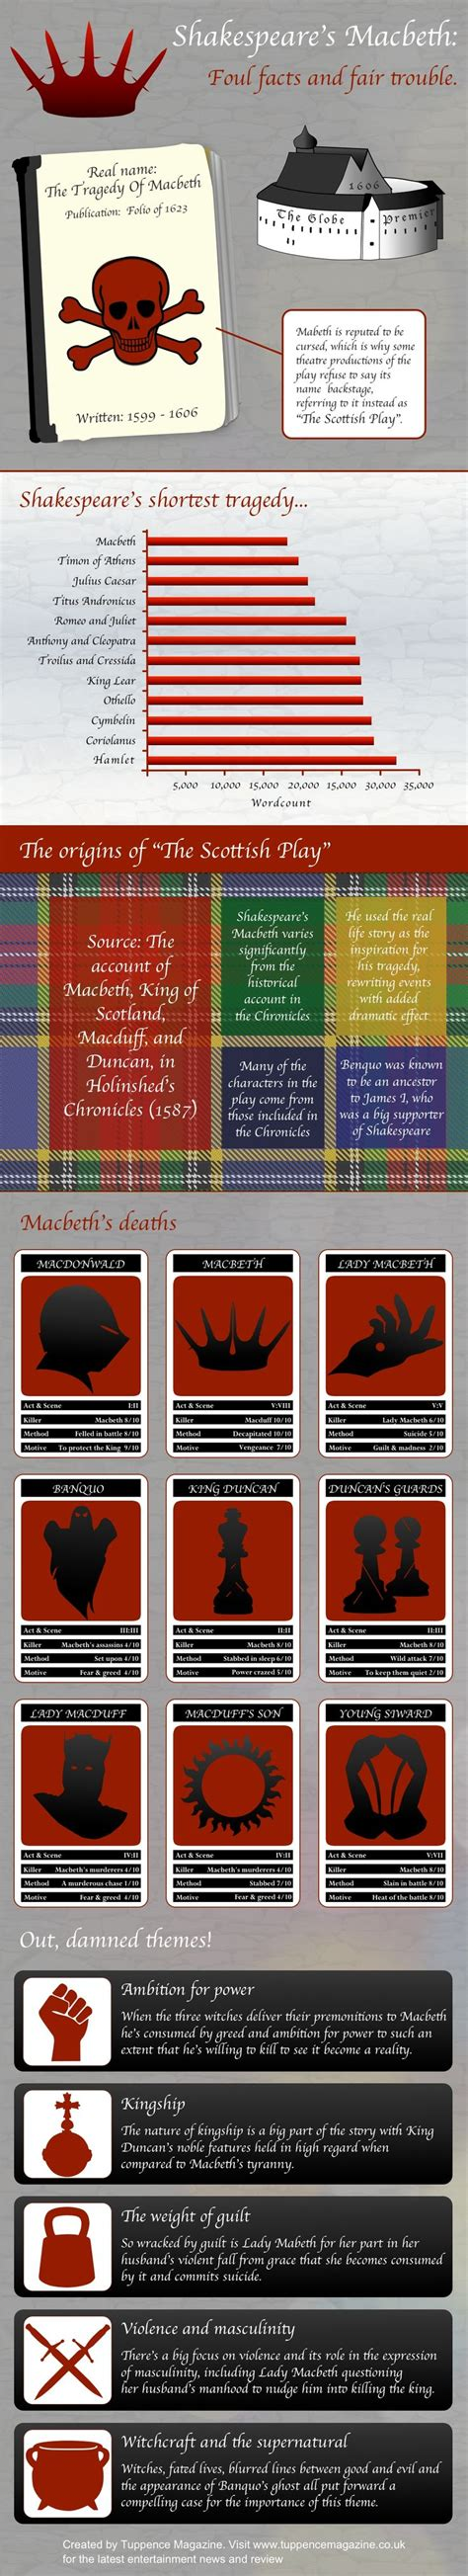 themes explored in hamlet the 25 best macbeth quotes ideas on pinterest quotes